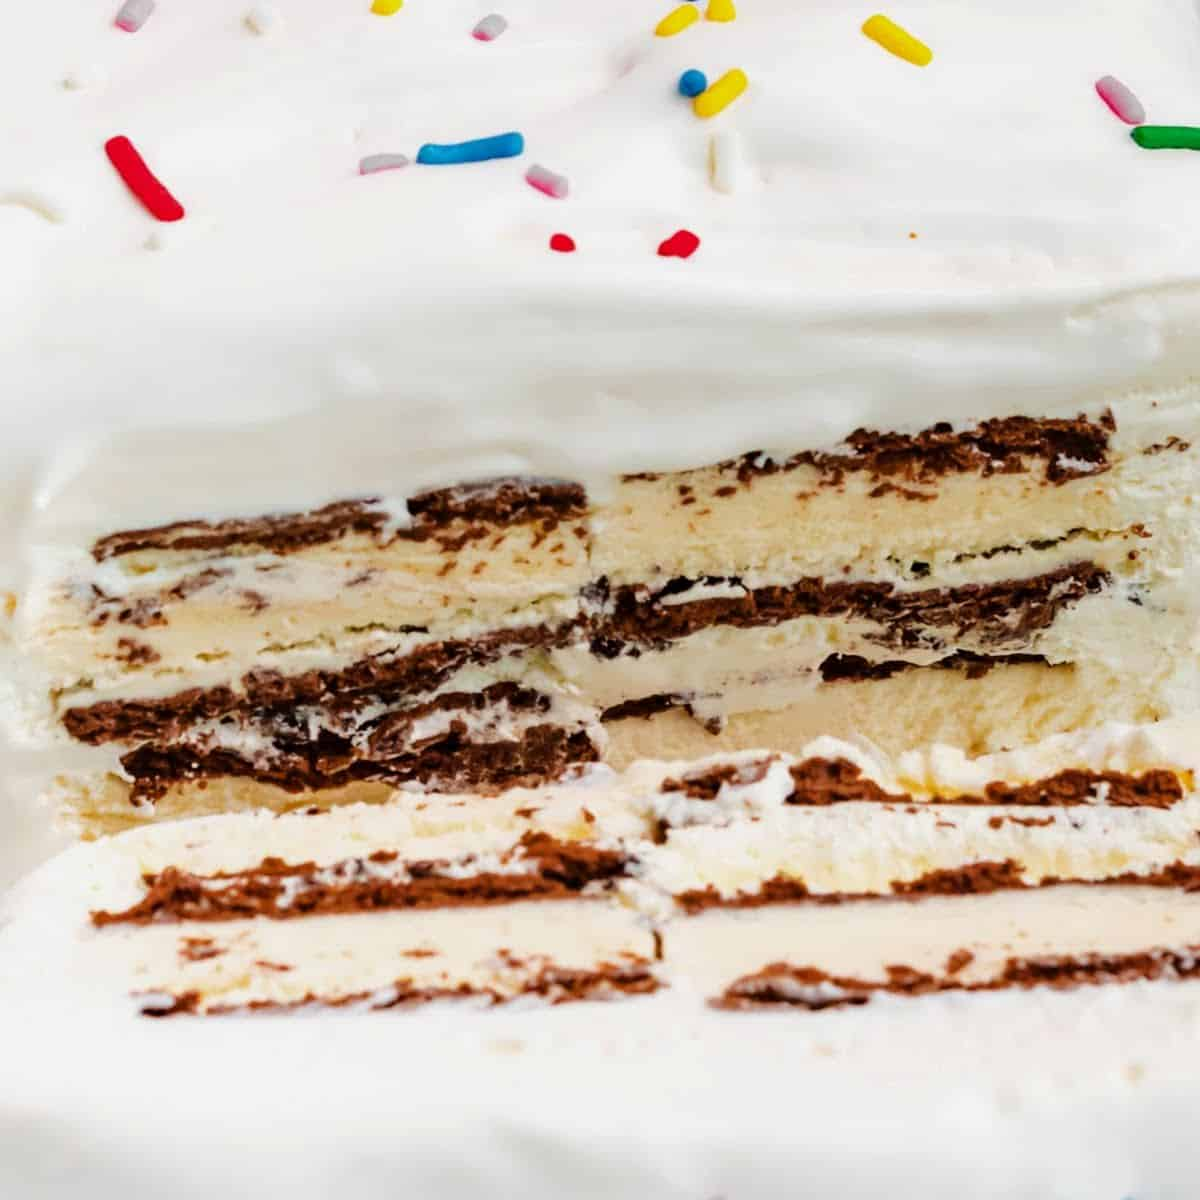 square image of ice cream sandwich cake with a slice cut off to show layers